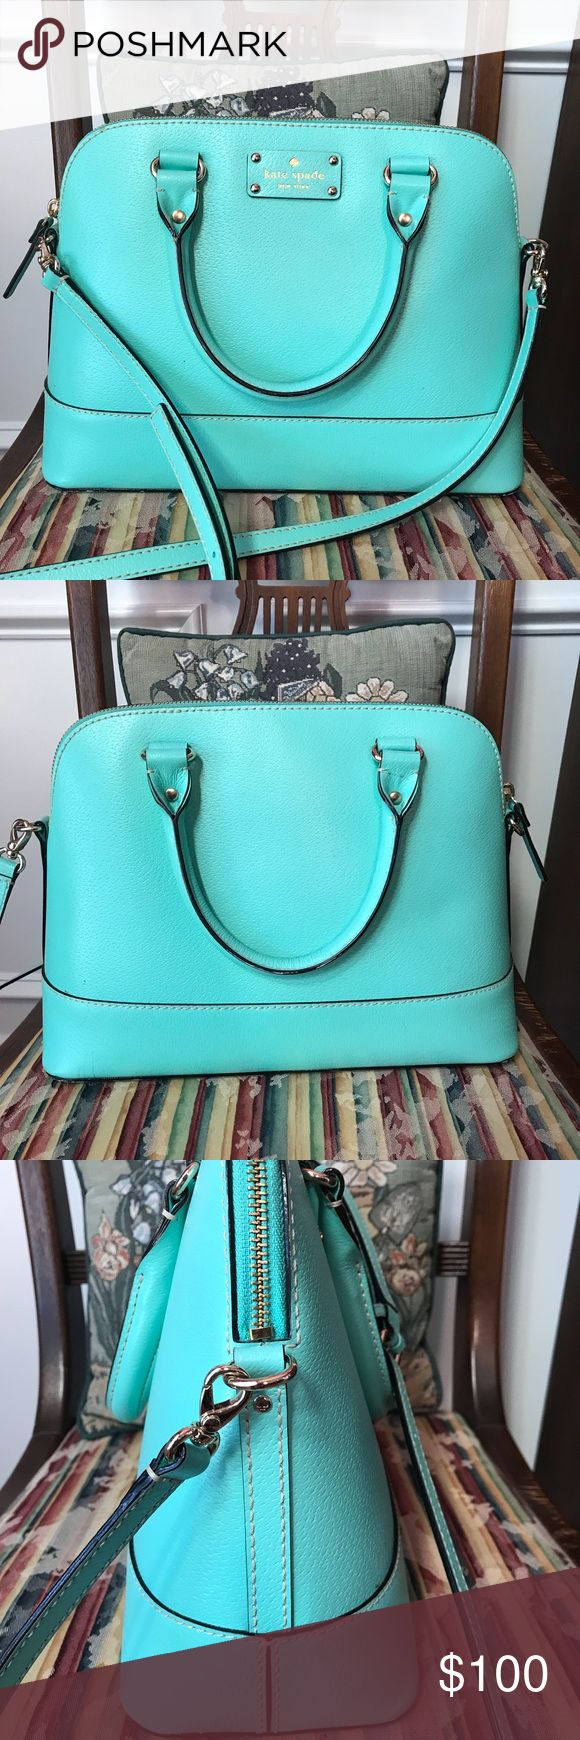 Kat Spade Purse Robins egg blue purse. Crossbody strap included. No scratches or spots seen. Super cute for spring!!! Bought from Kate Spade outlet kate spade Bags Crossbody Bags